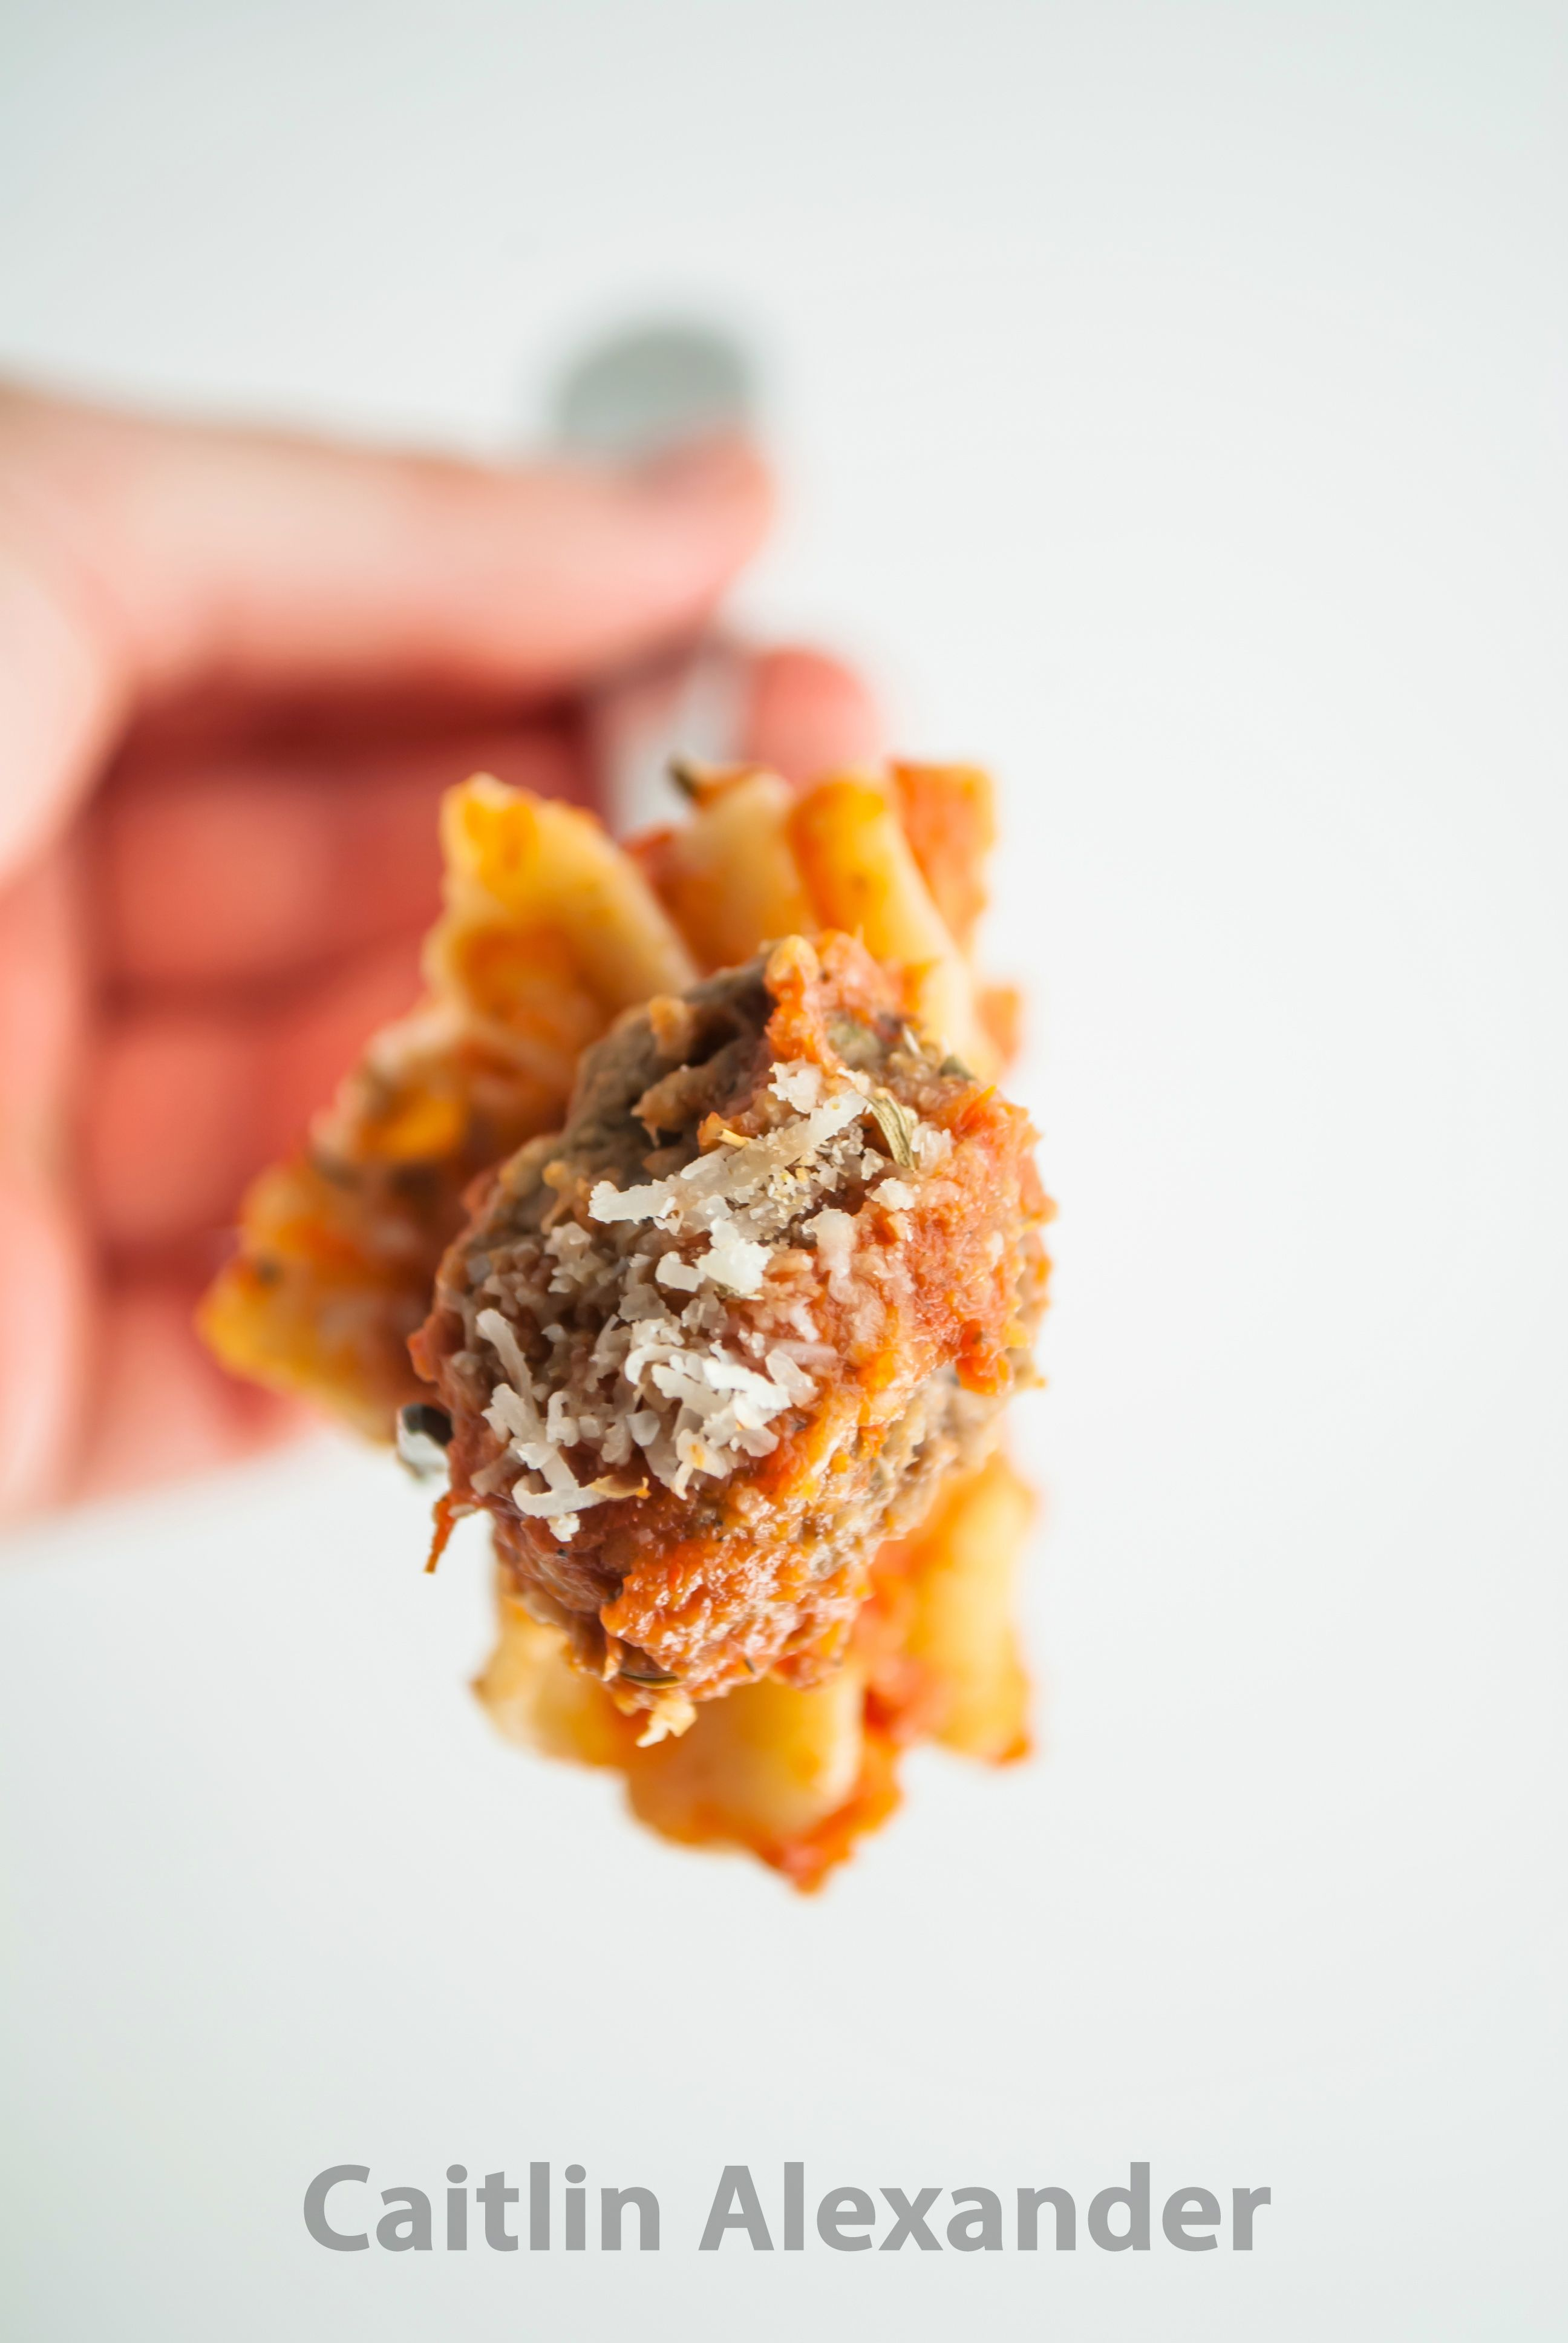 pasta and meatballs, anyone?